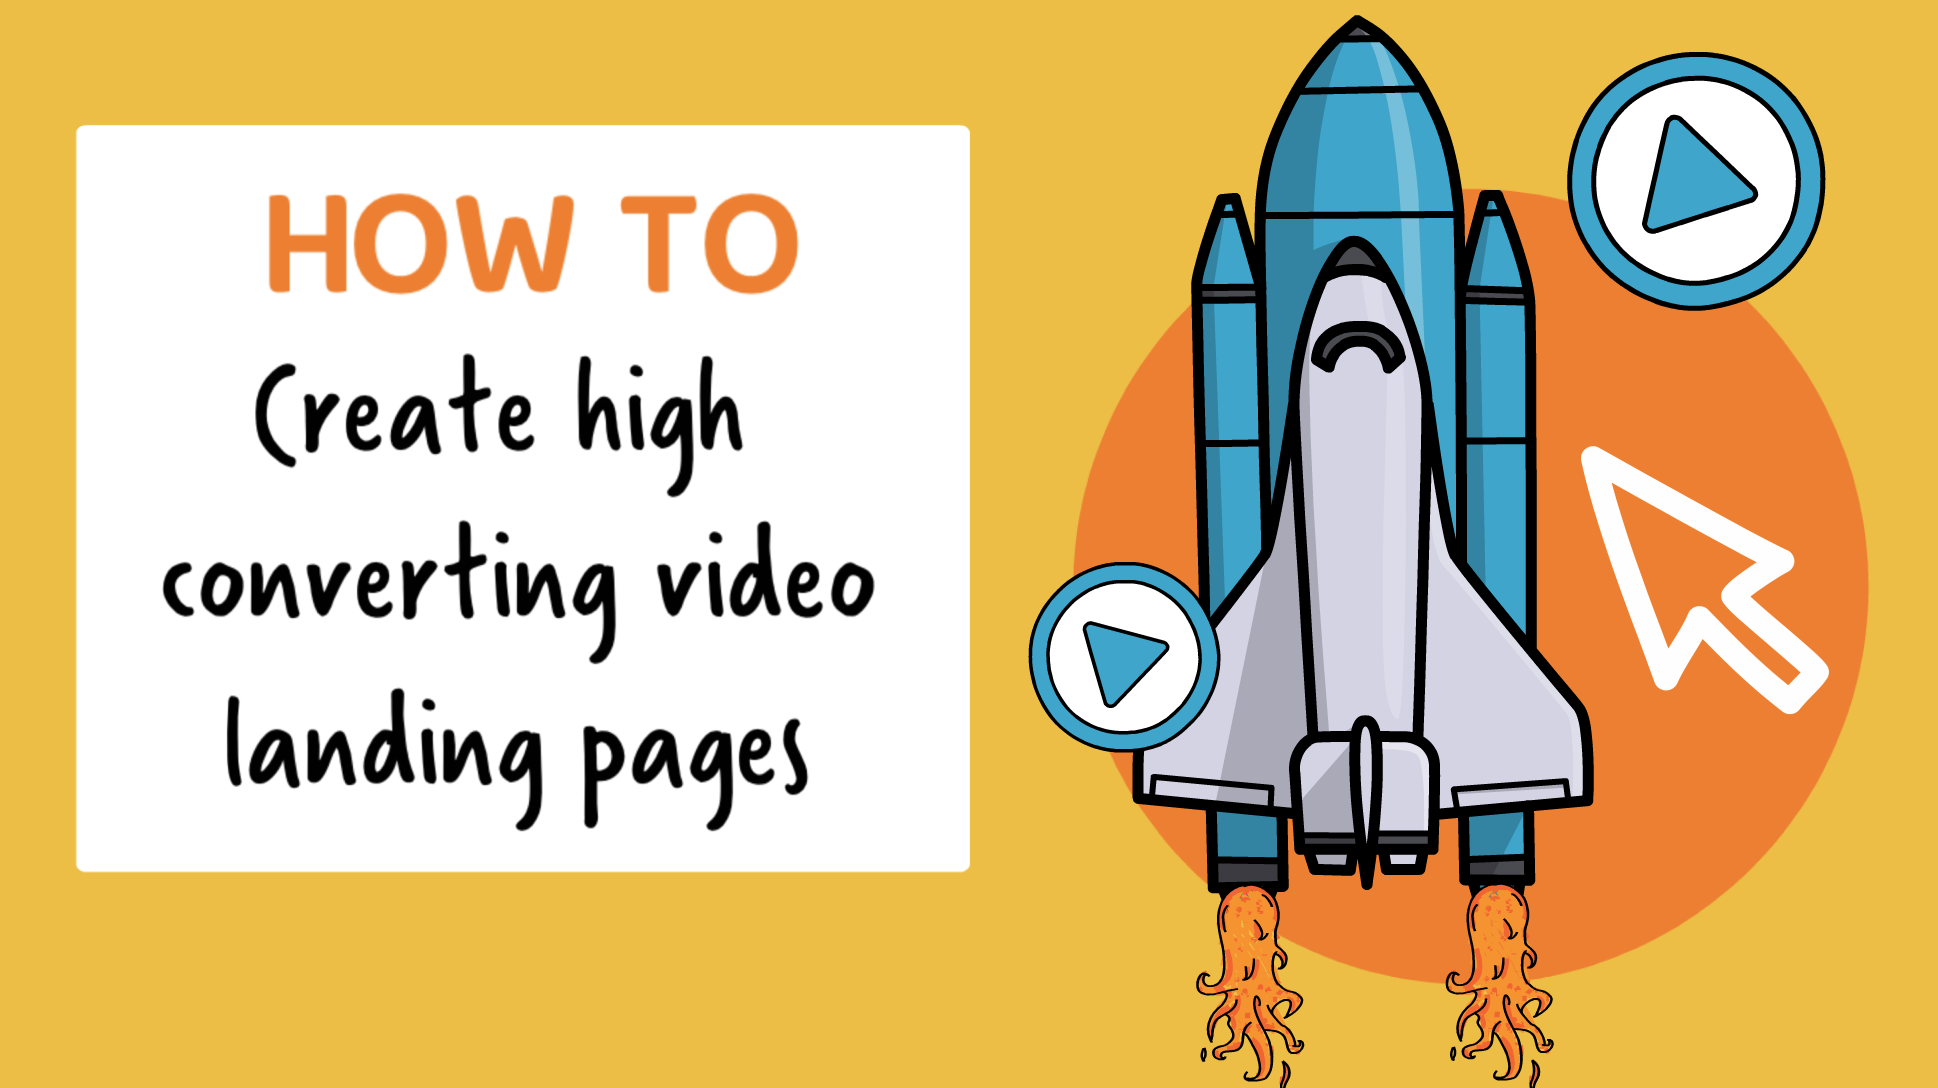 How to Create a High Converting Video Landing Page